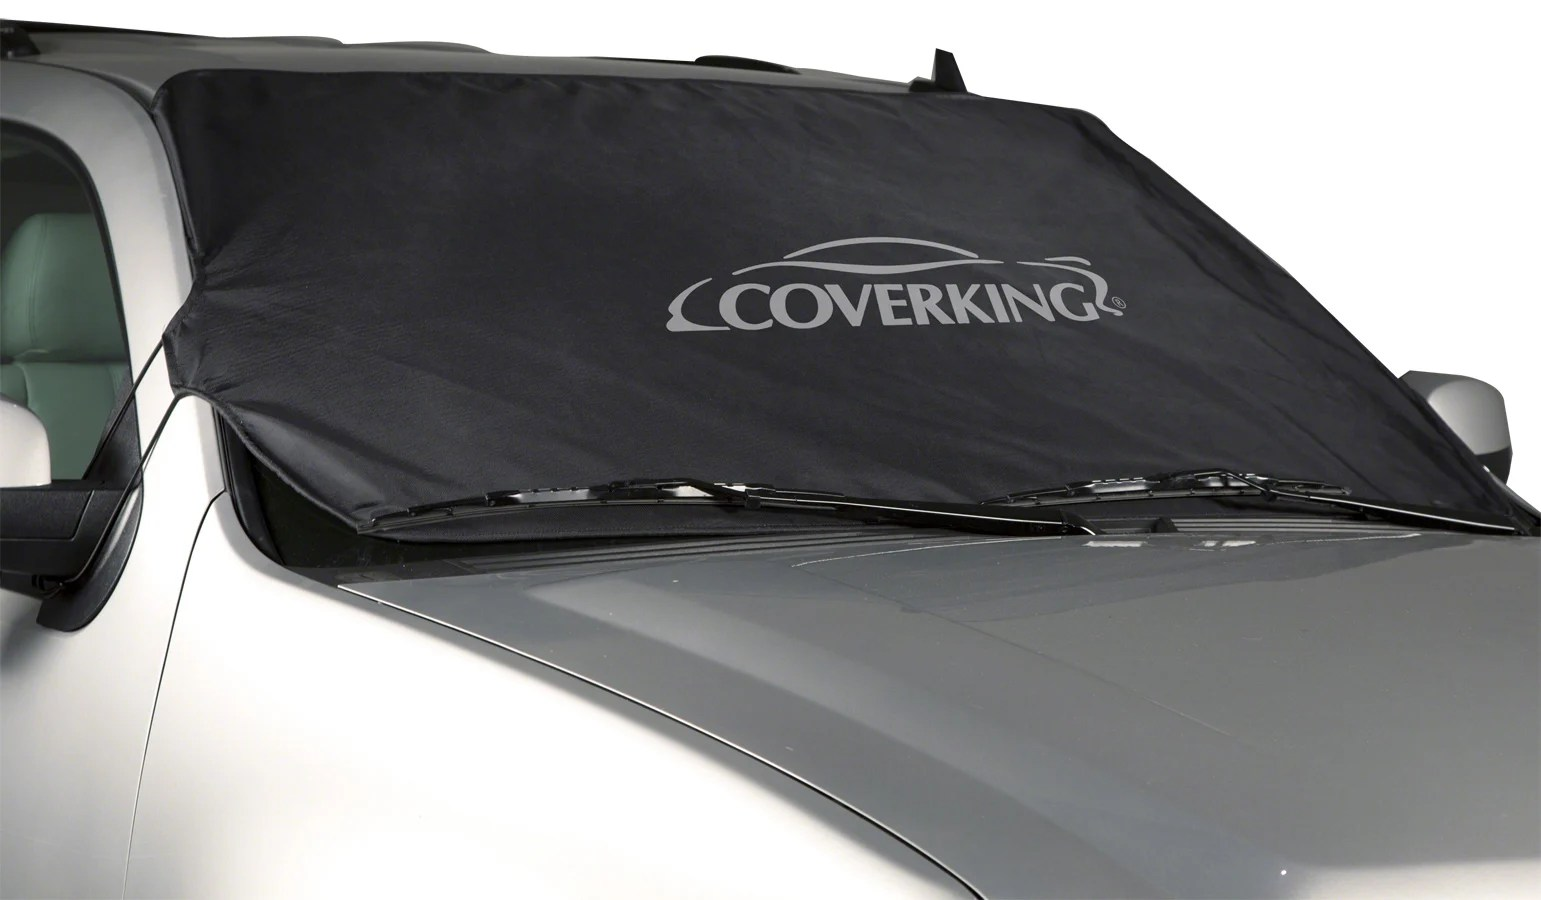 Image result for windshield cover